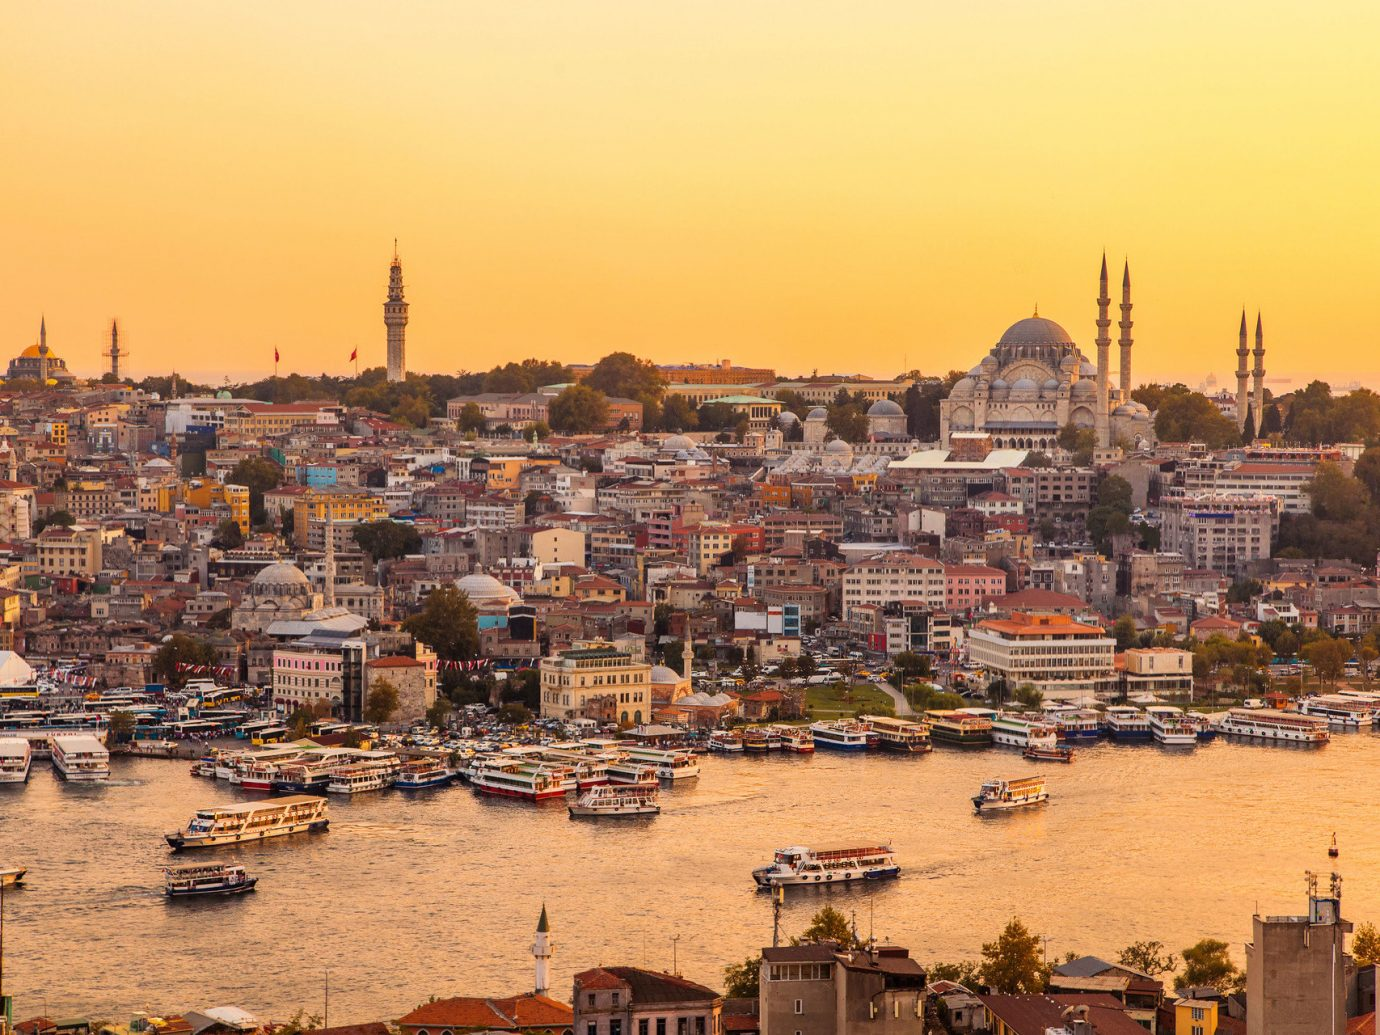 Hotels sky outdoor scene cityscape Harbor Town City geographical feature skyline Boat landmark human settlement horizon urban area evening Sunset dusk ancient history panorama several